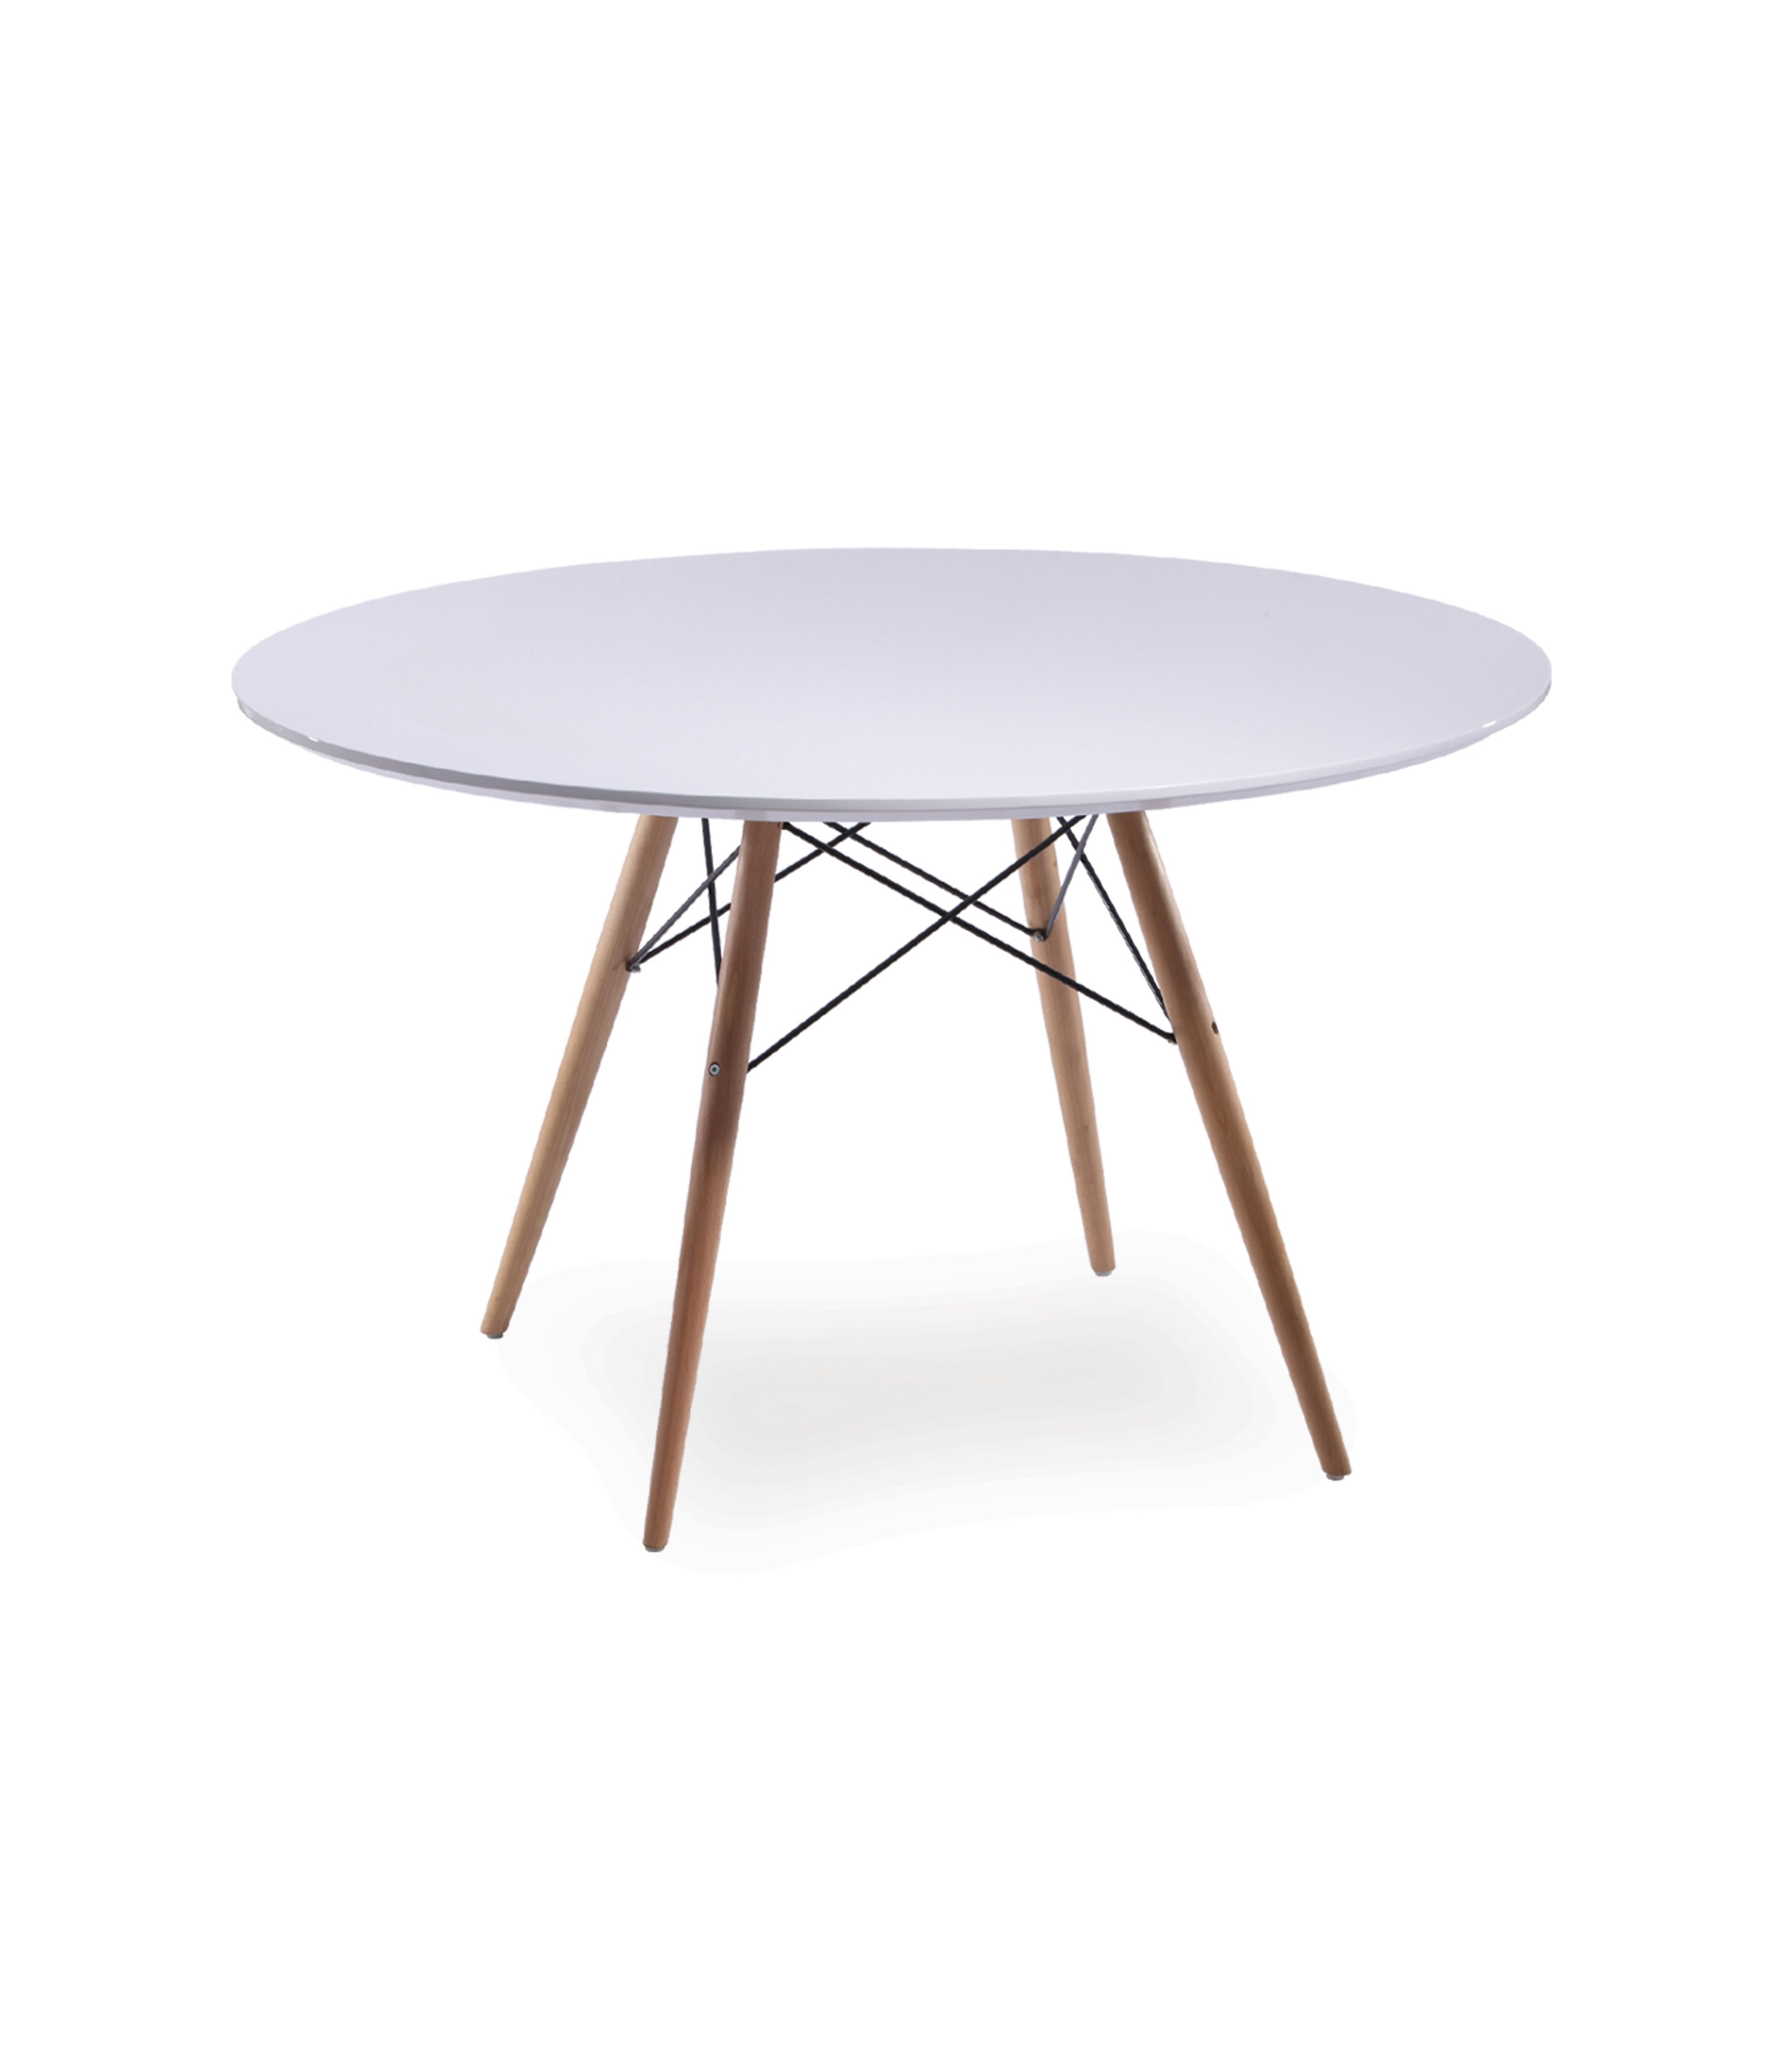 Simplylife Round Dining Table Dining Table In Kitchen Dining Table Legs [ 3780 x 3307 Pixel ]